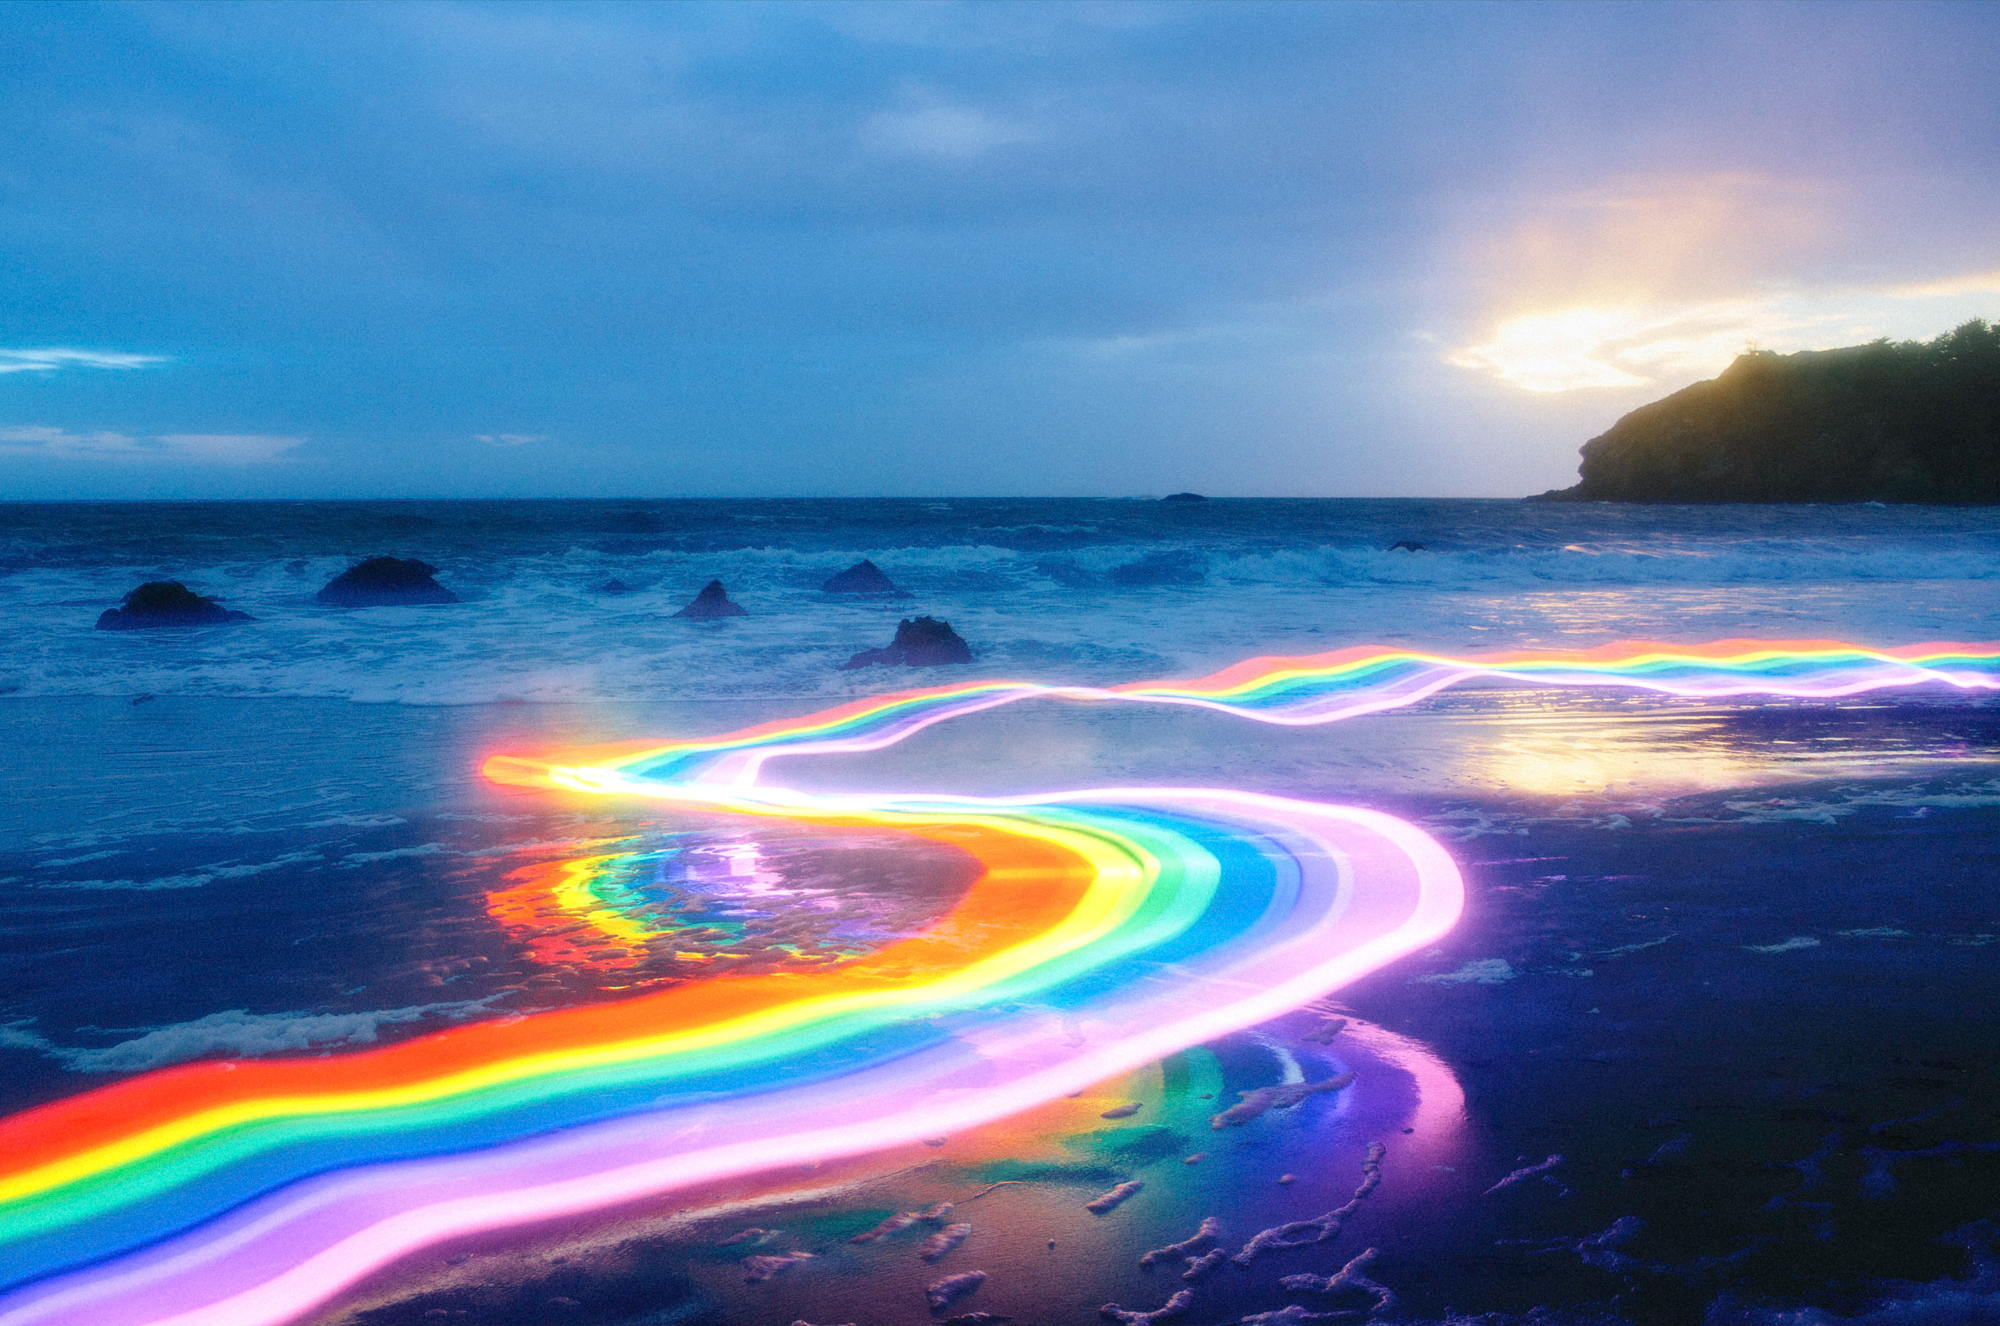 Vivid Rainbow Roads Trace Illuminated Pathways Across Forests and     Daniel Mercadante has a slate of unique films under his belt  made in  partnership with his wife Katina  as The Mercadantes  including Ball and  Breathe